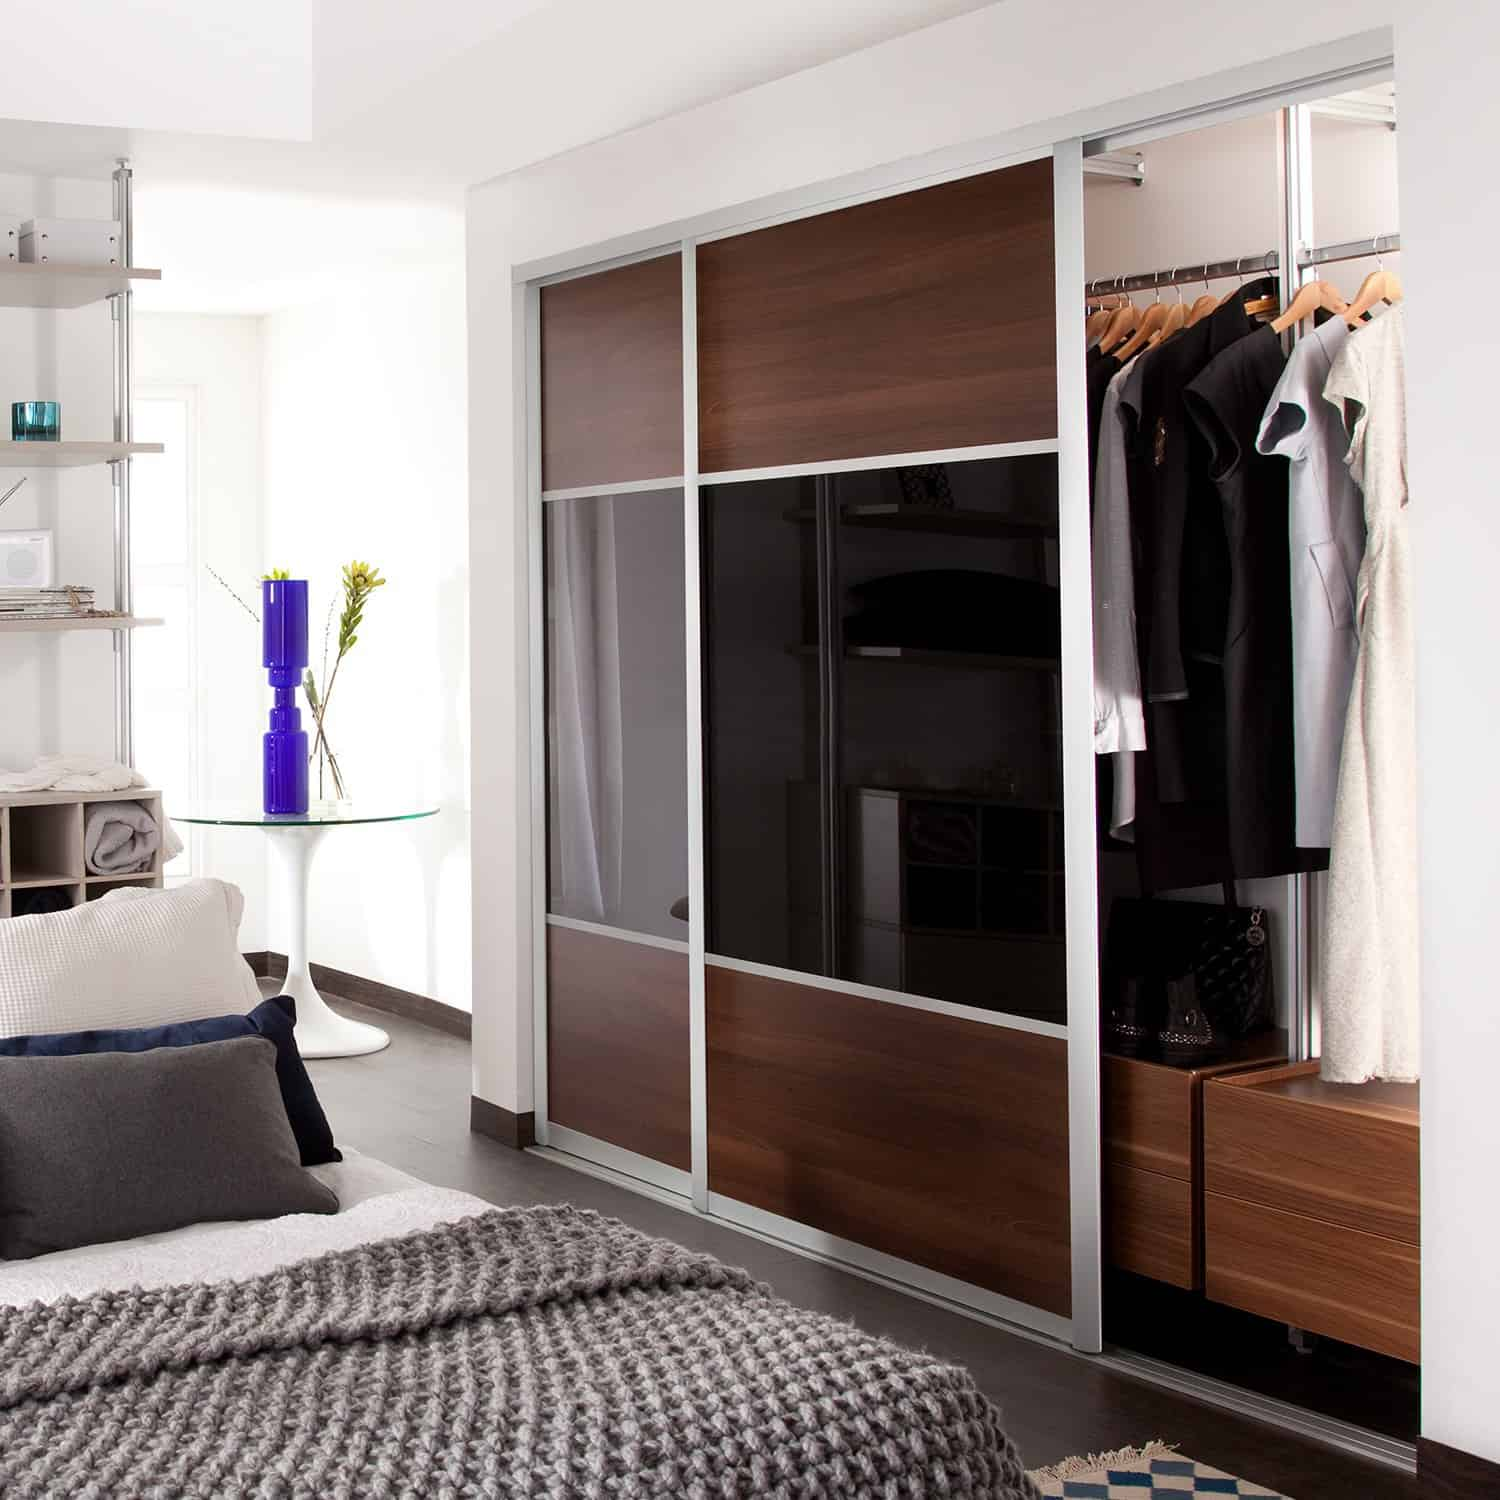 Sliding Doors Of Bedroom: Sliding Doors And Fitted Wardrobes